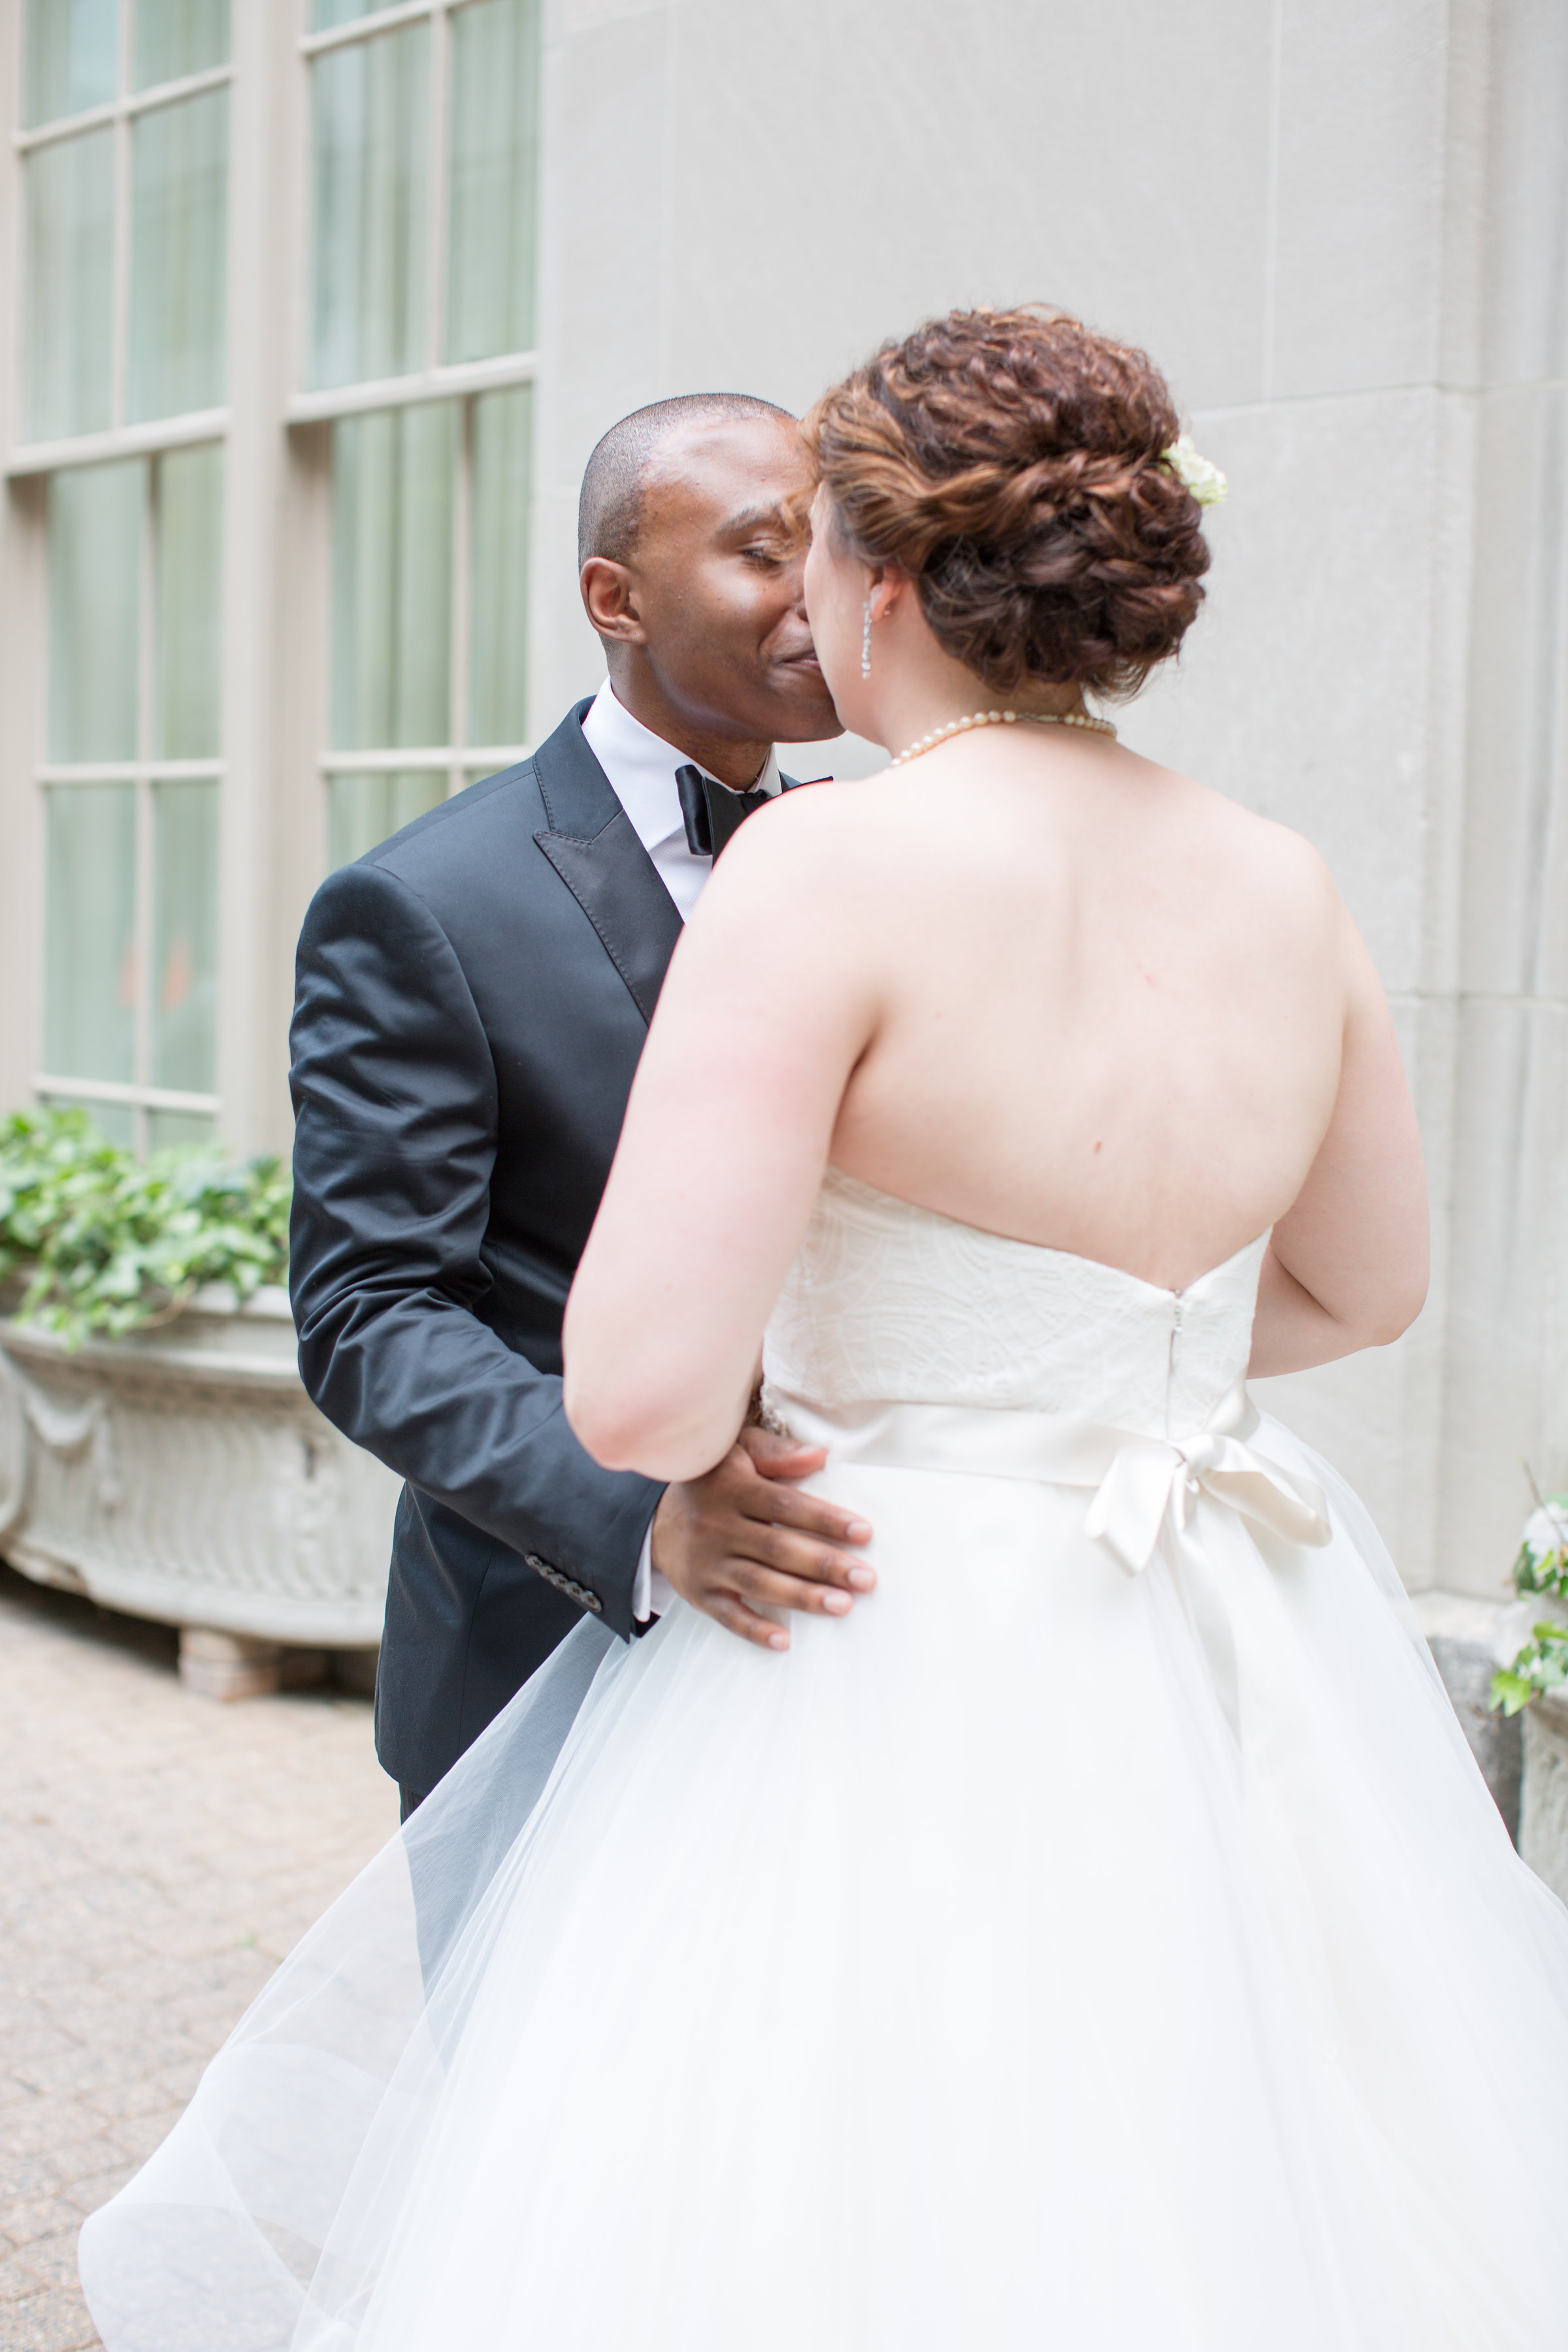 Anna-and-Terrell-Wedding-Bride-Groom-71.jpg